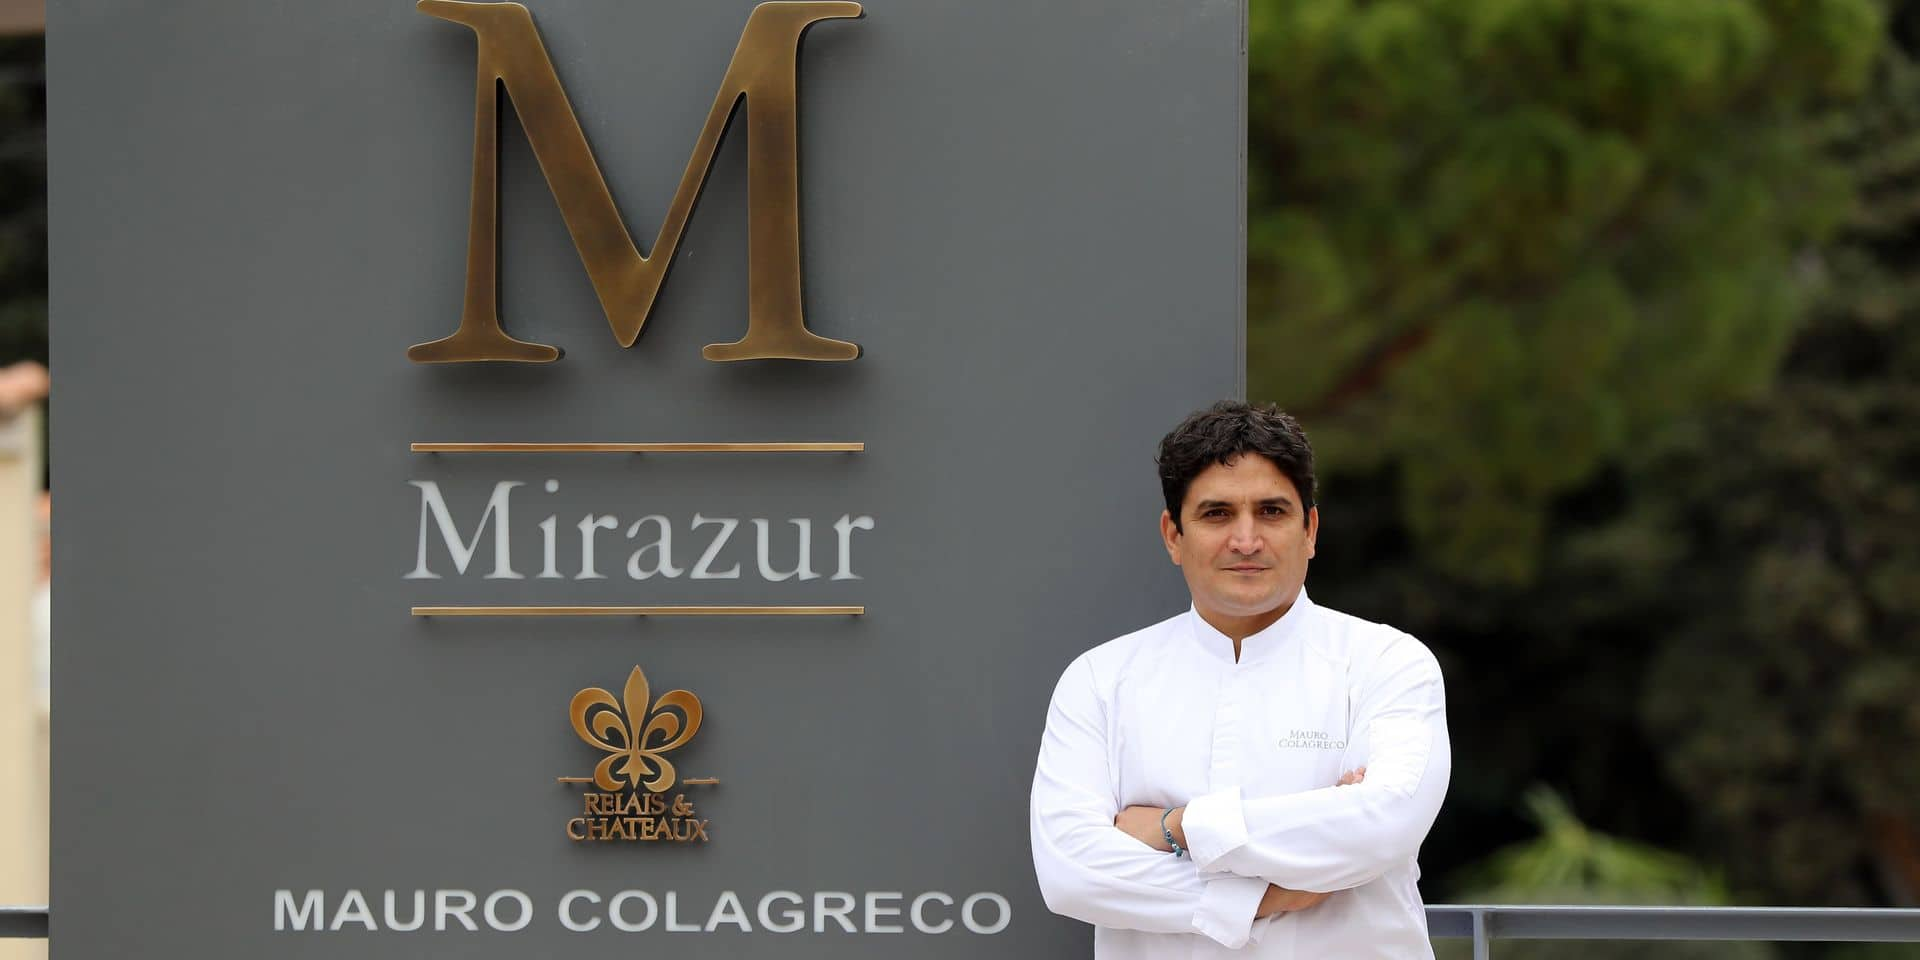 """(FILES) In this file photo taken on February 15, 2018 Argentinian chief Mauro Colagreco poses in front of """"Mirazur"""" restaurant on the French riviera city of Menton. - Colagreco was awarded a third Michelin star during the Michelin guide award ceremony on January 21, 2019. (Photo by VALERY HACHE / AFP)"""